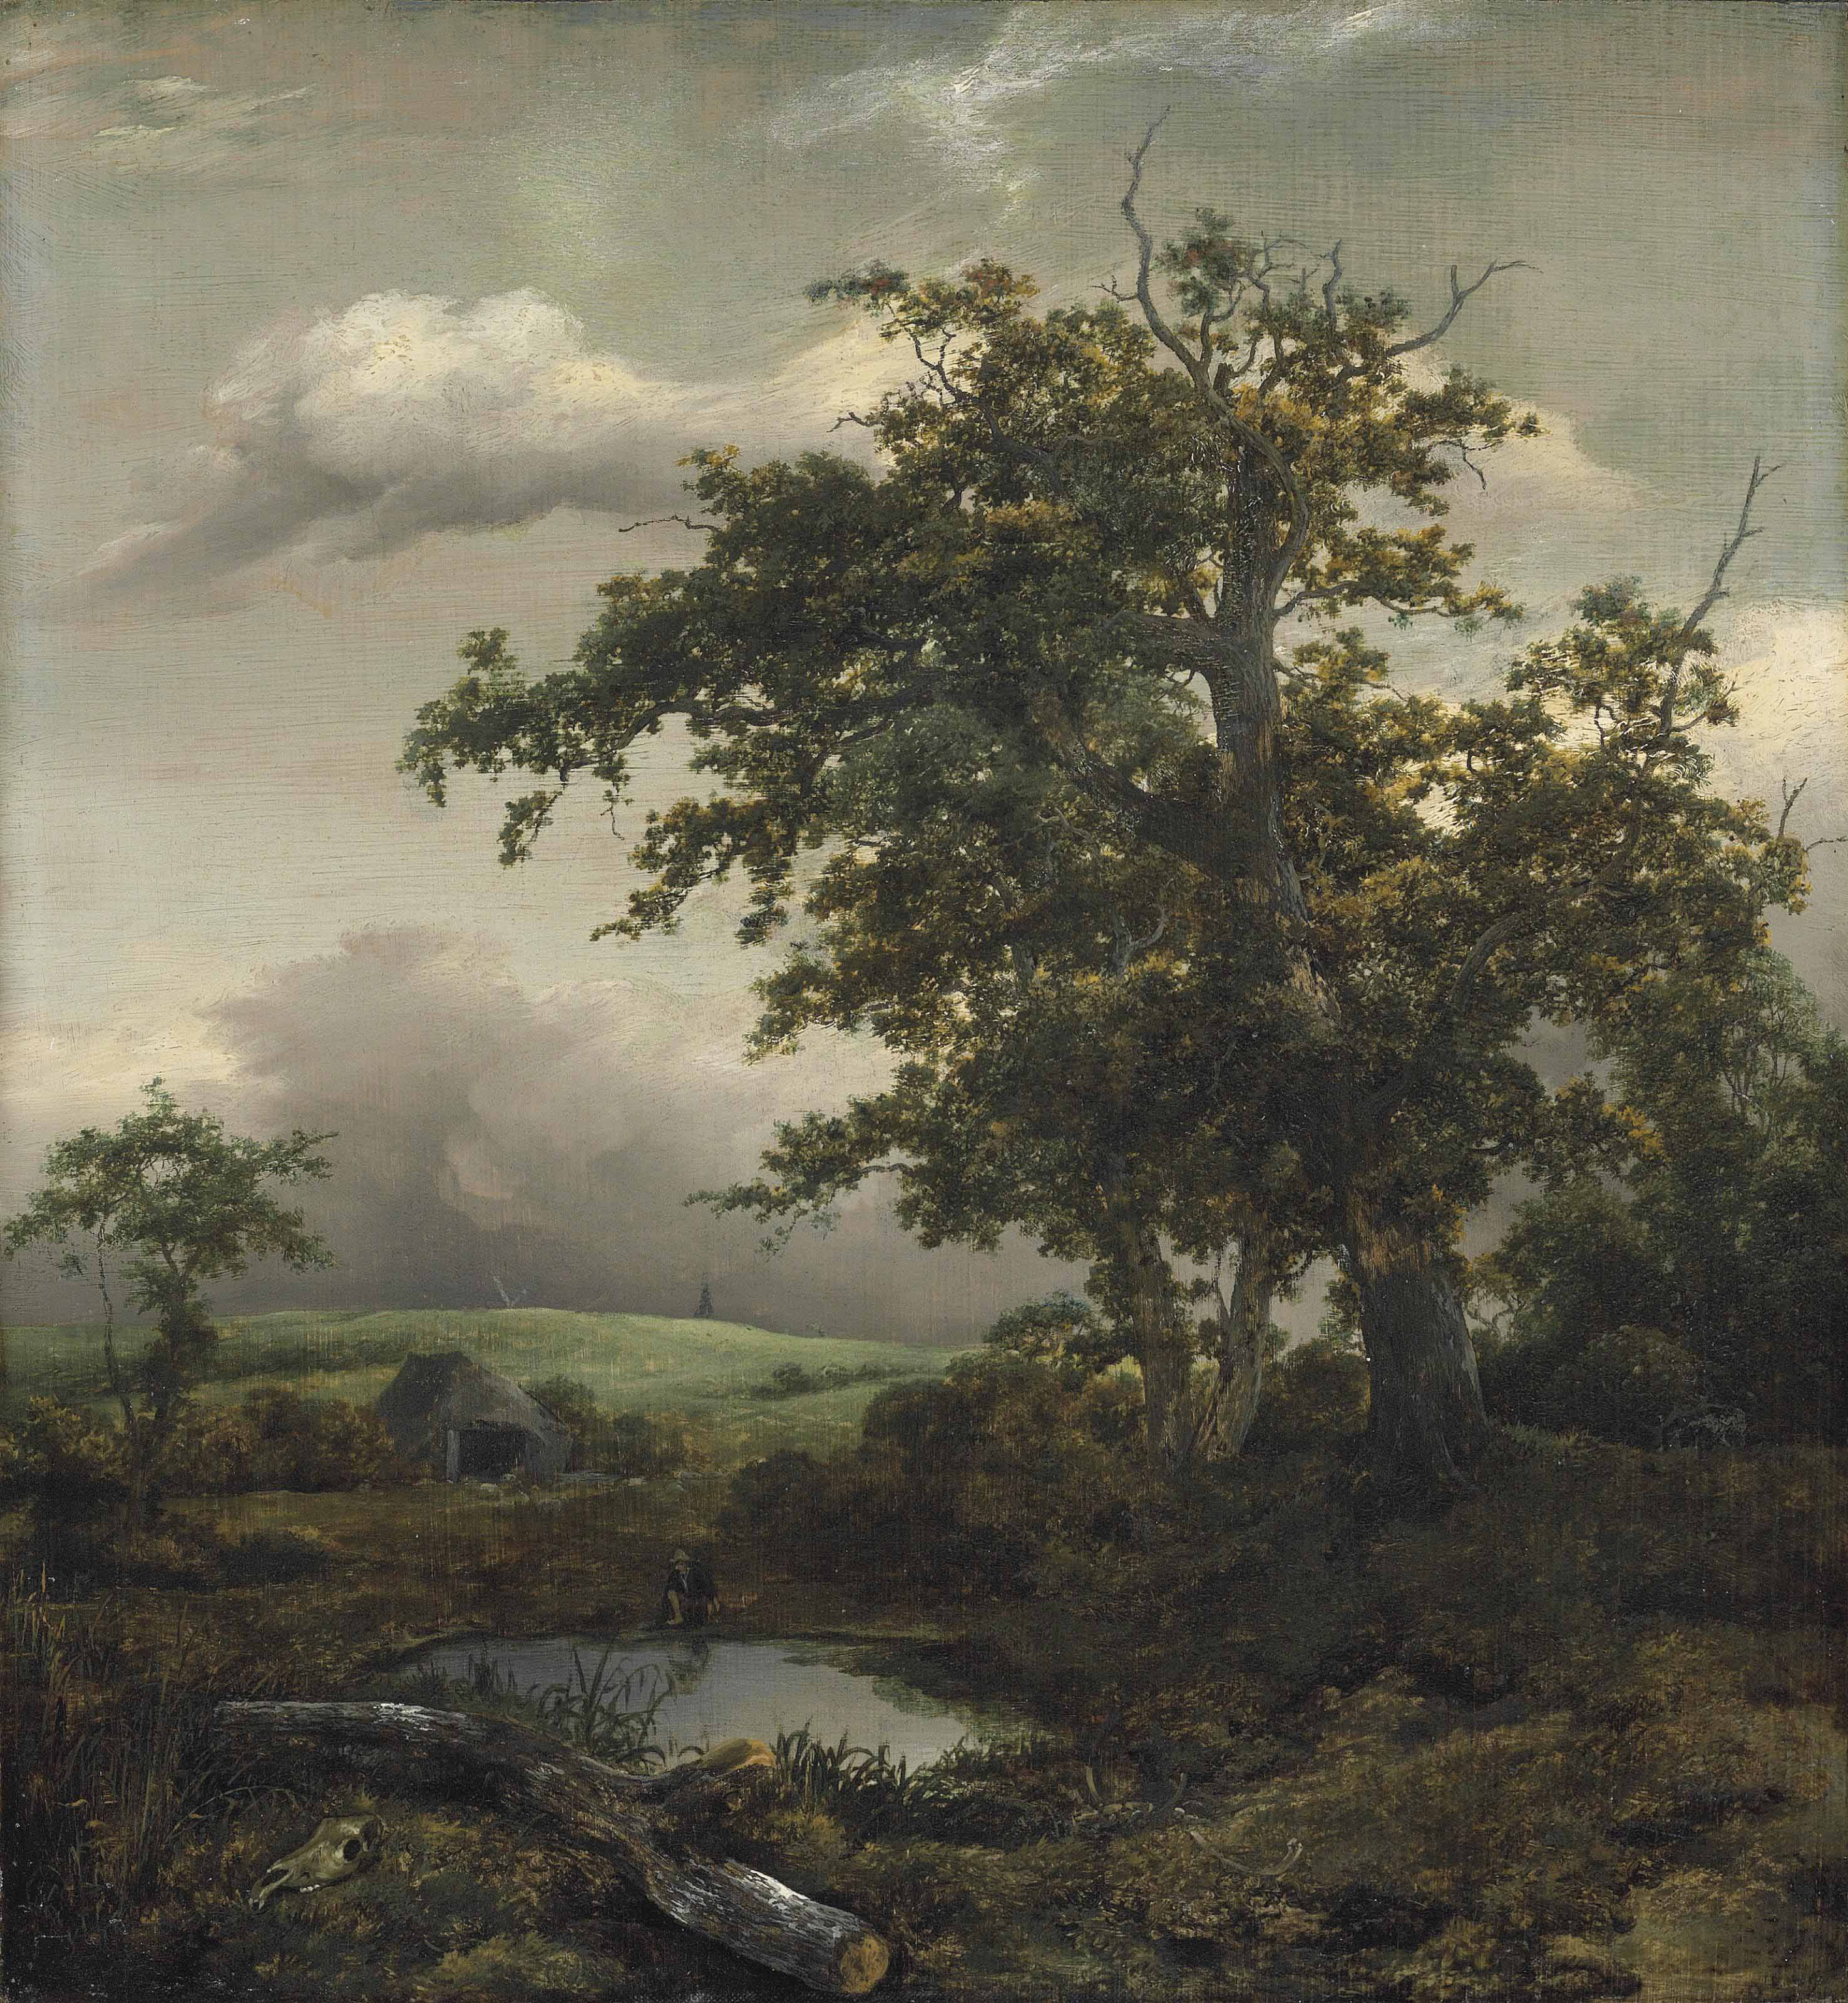 A wooded landscape with a man at rest by a pond near a hut, a windmill beyond